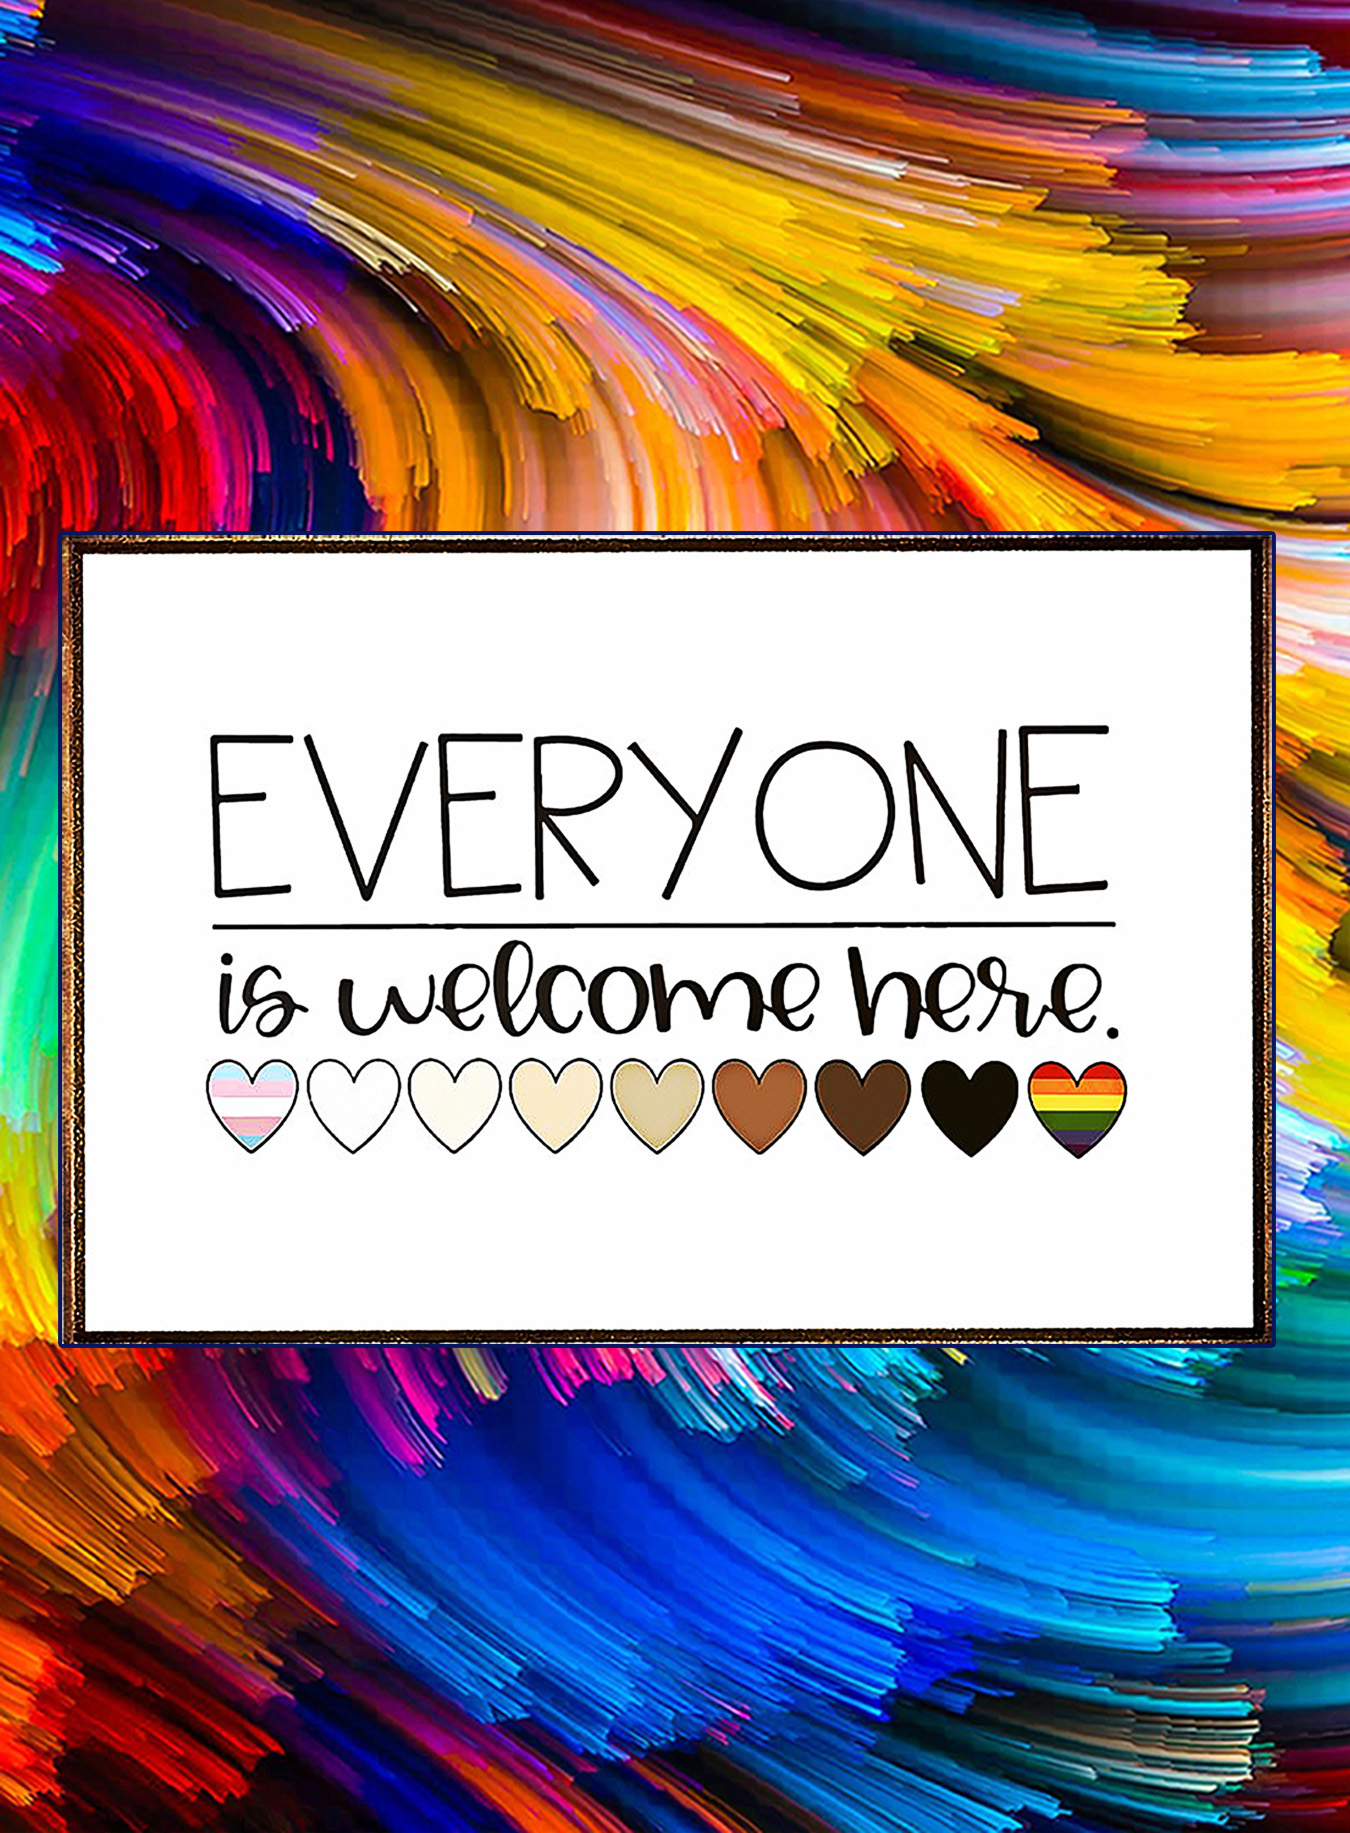 Everyone is welcome here poster - A2